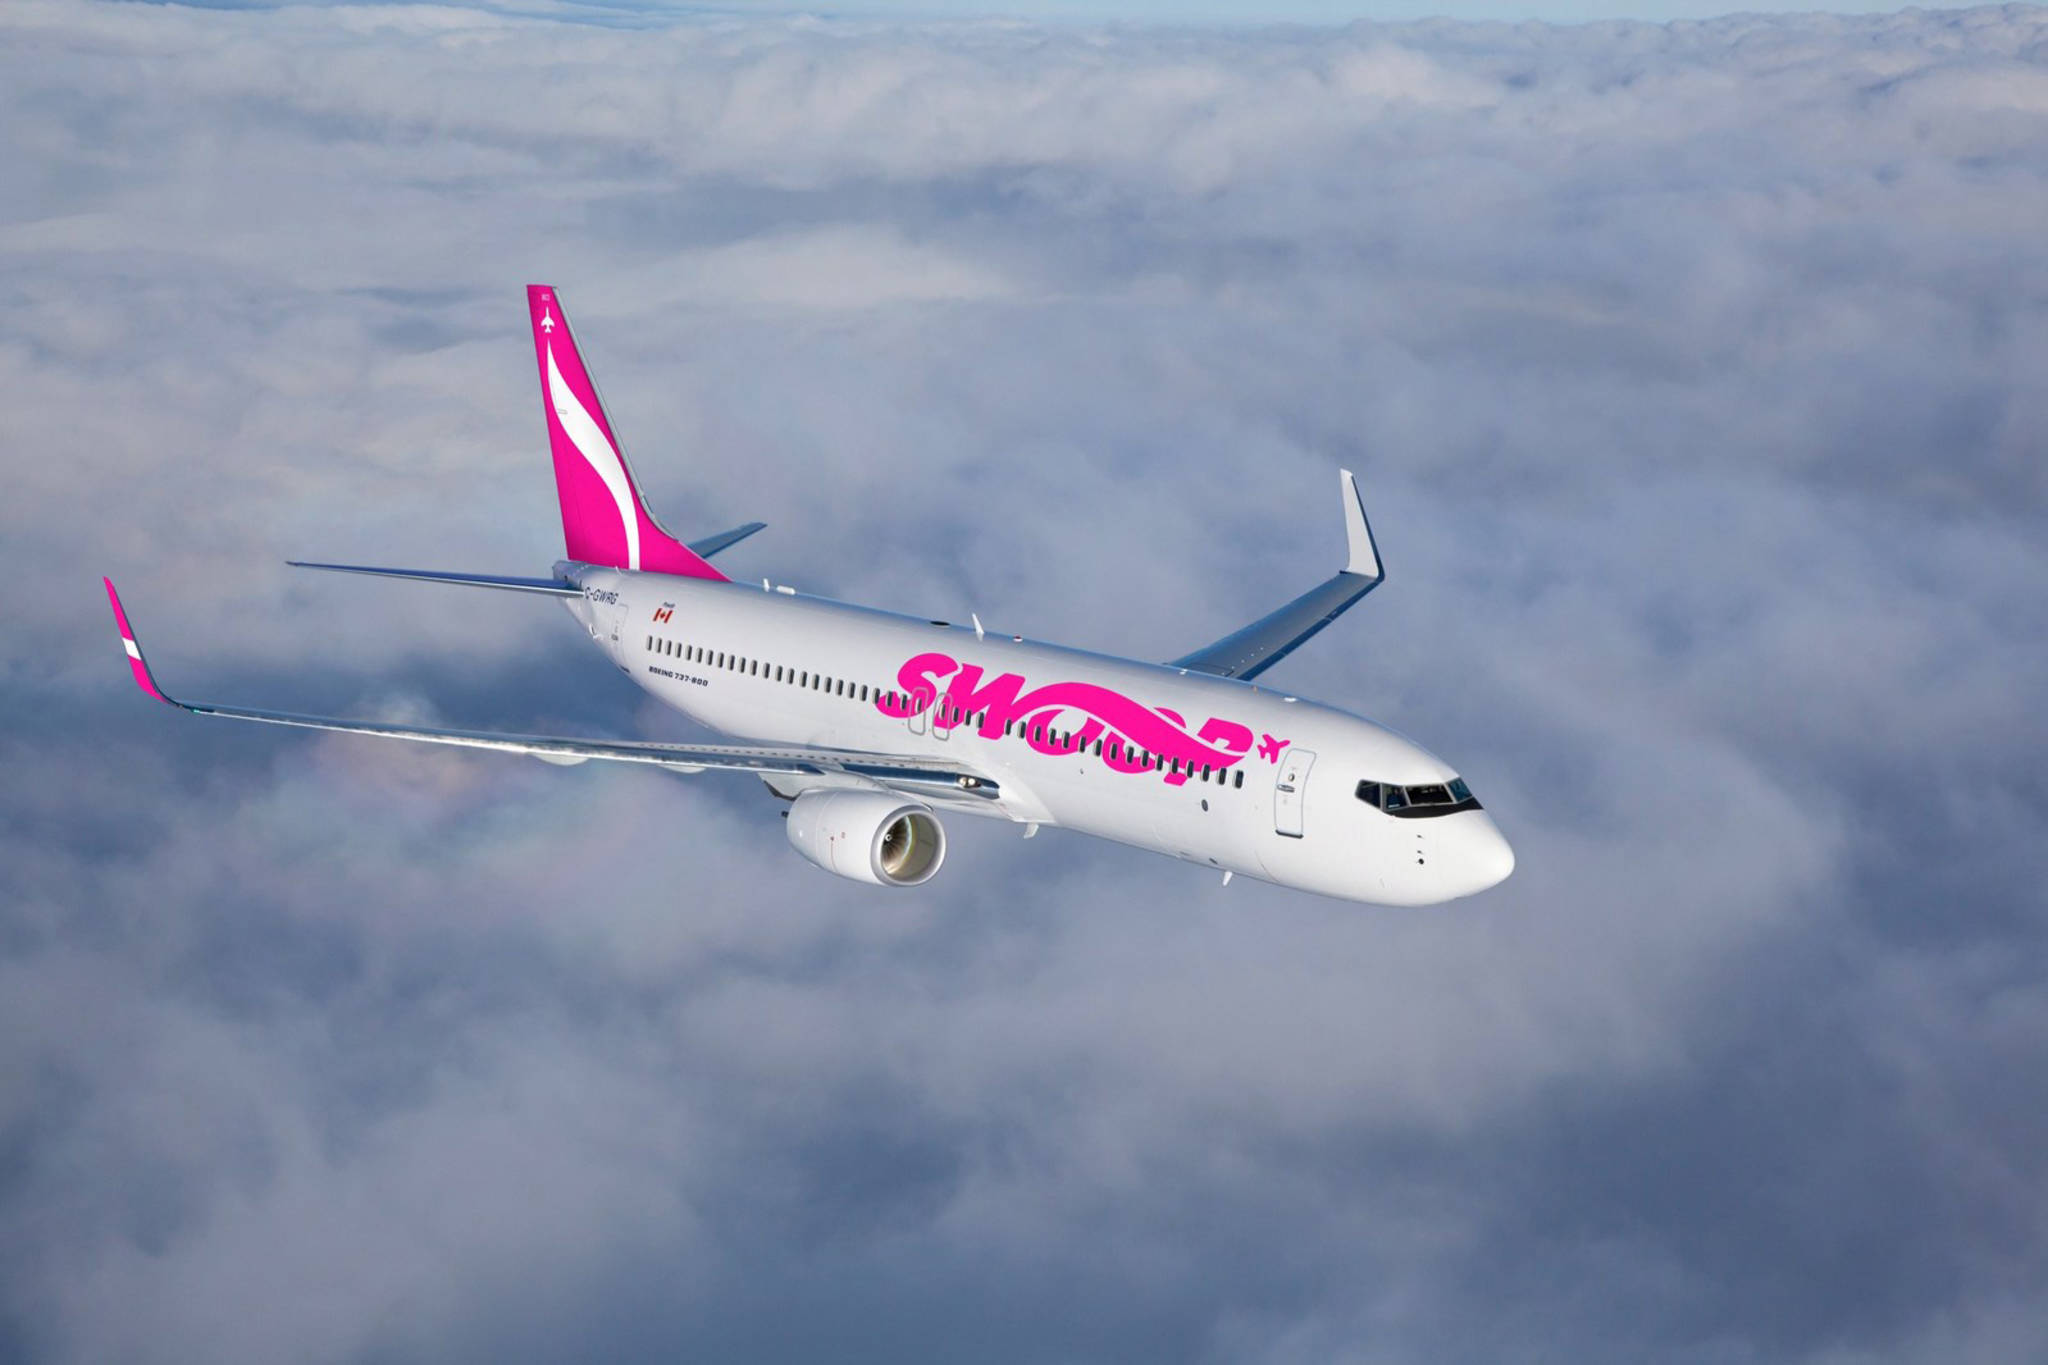 low cost airline Low cost airline paris - get more with less book now, save an extra $20 on flight tickets [ low cost airline paris ].